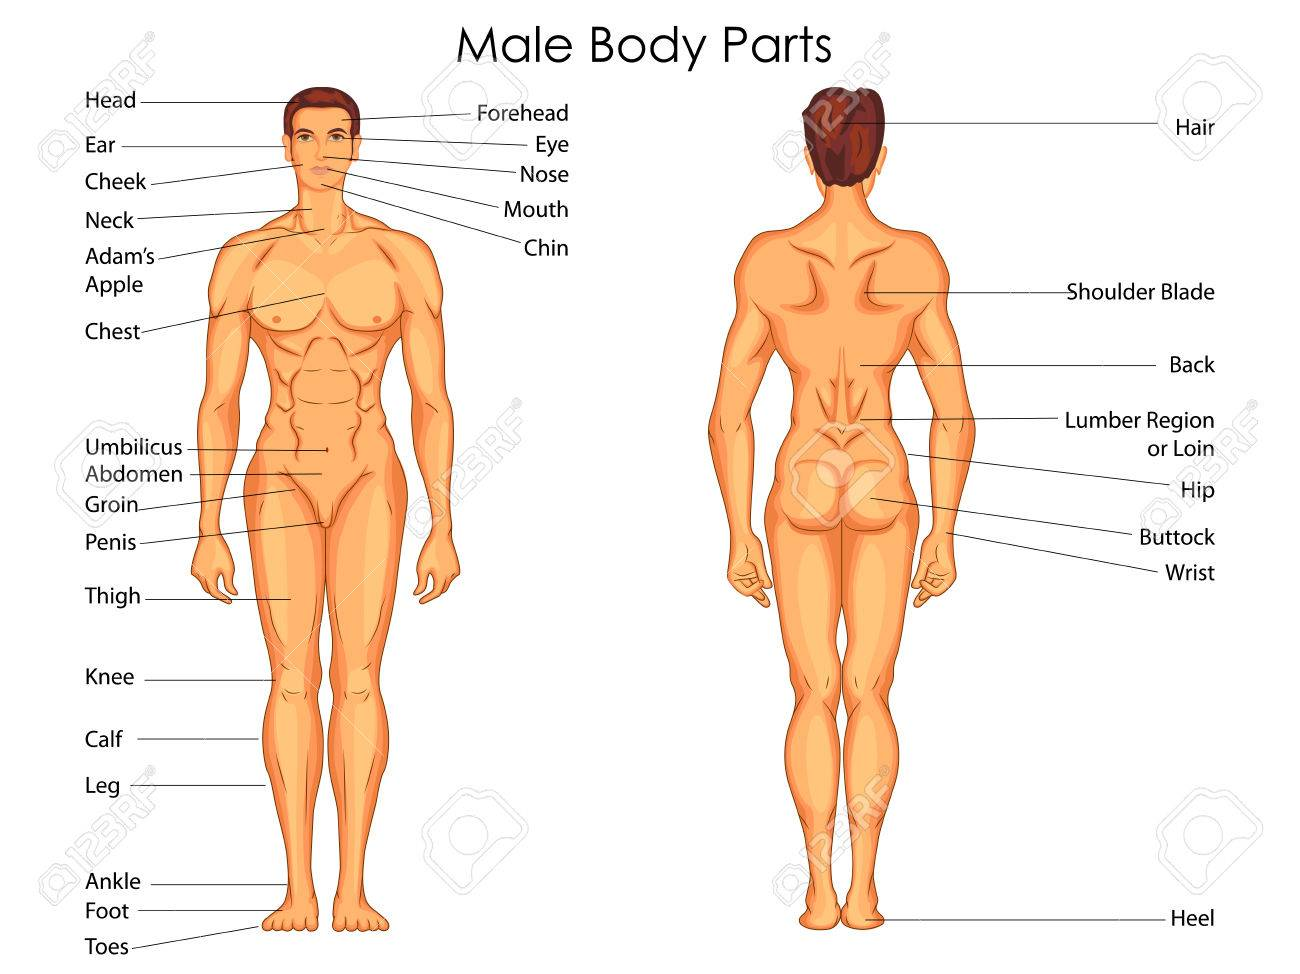 Medical Education Chart Of Biology For Male Body Parts Diagram